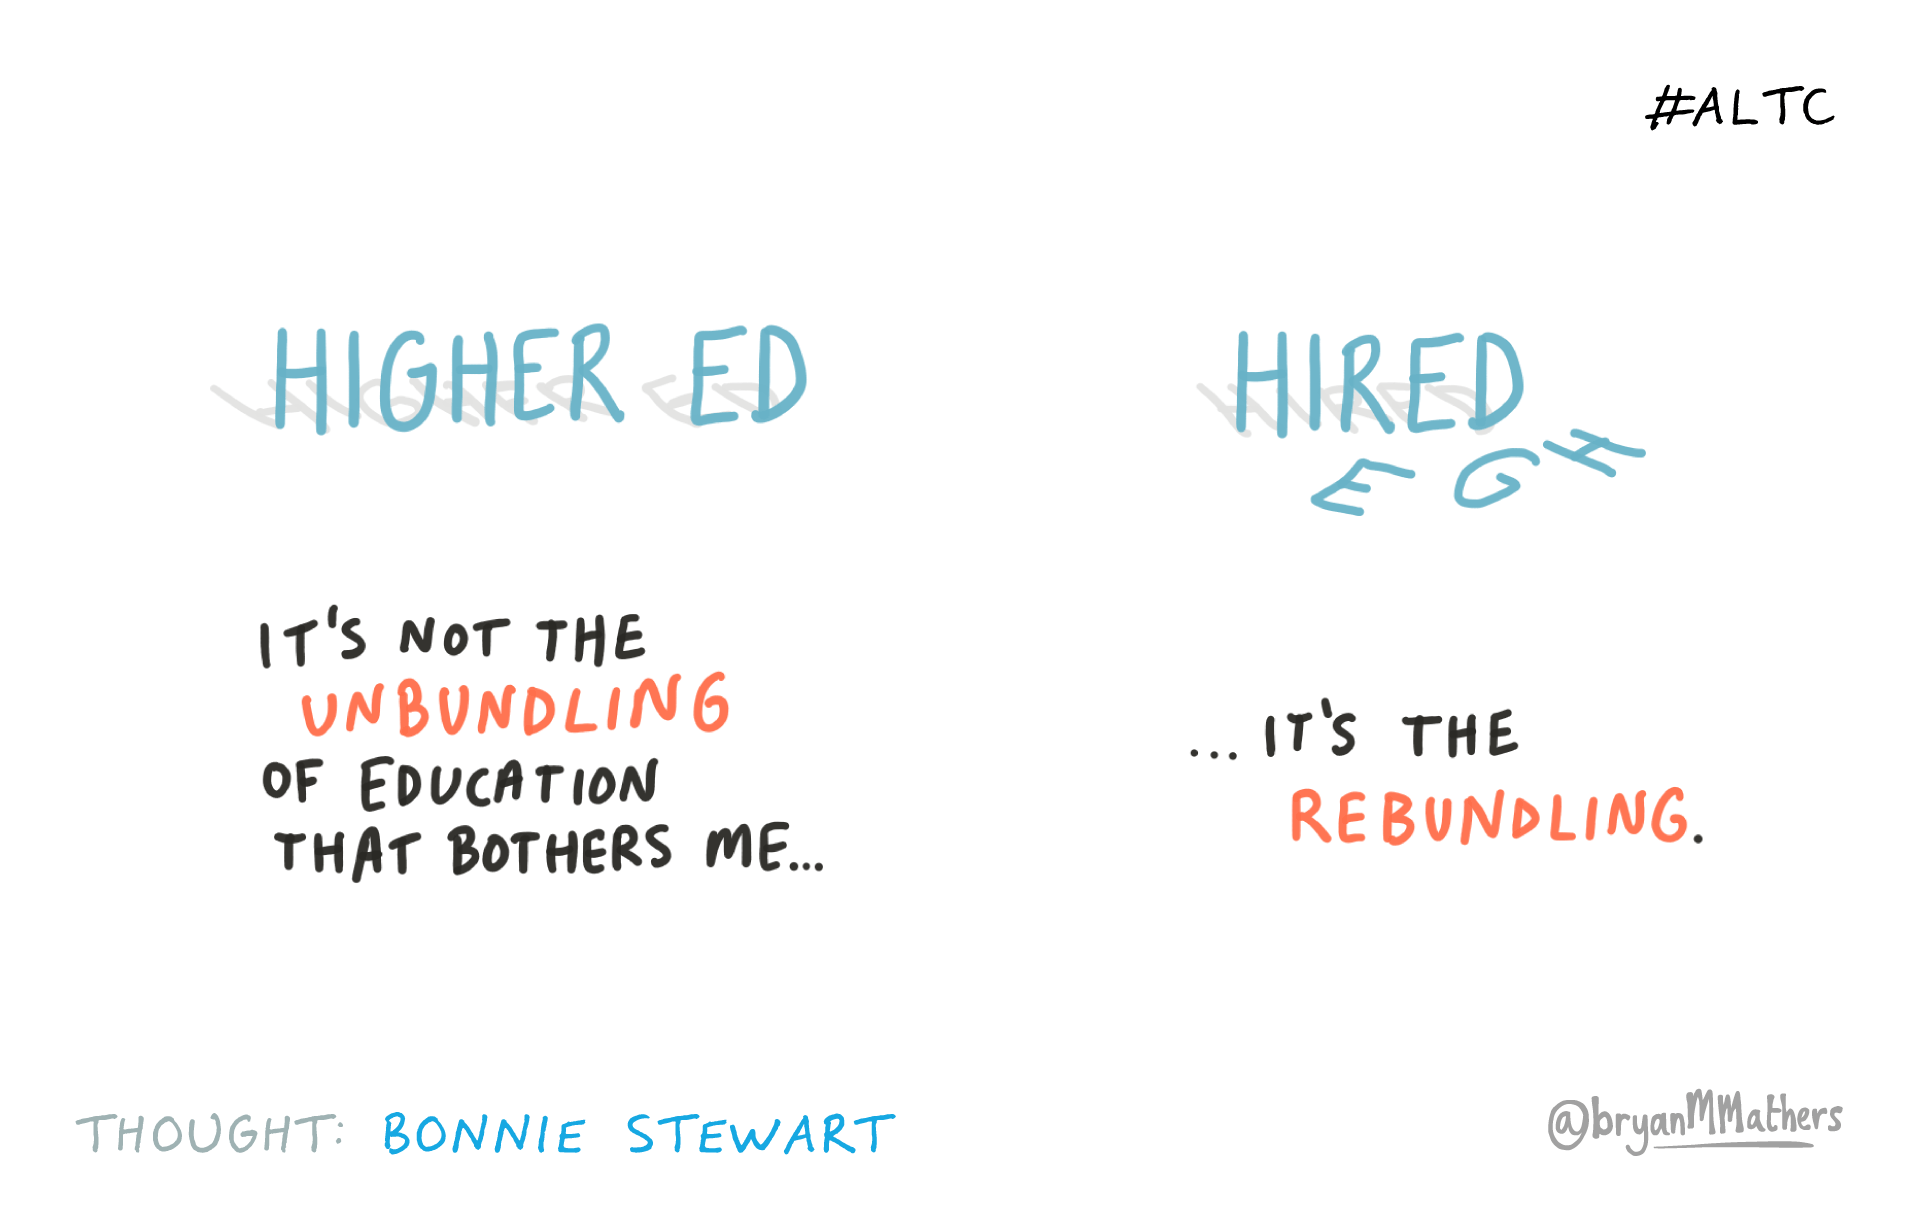 The unbundling of Higher Ed